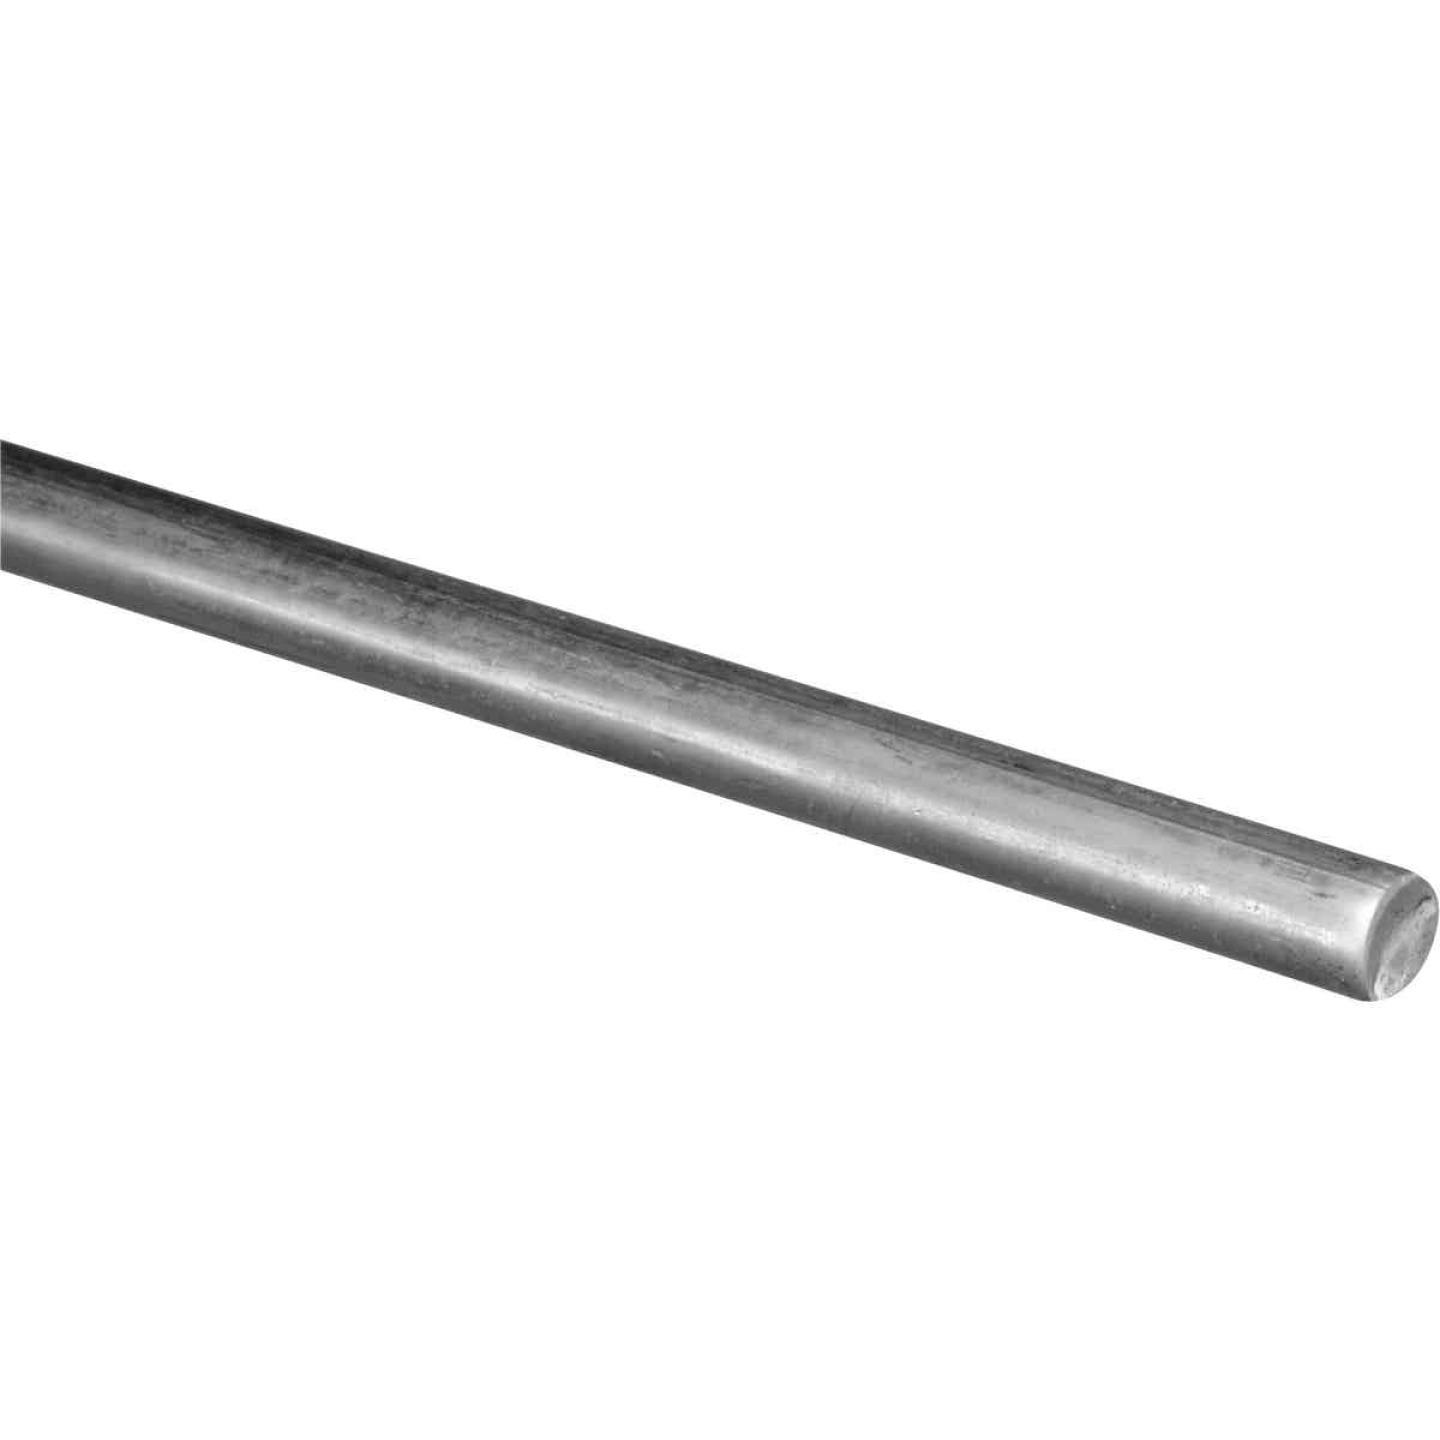 Hillman Steelworks Zinc-Plated 5/8 In. X 3 Ft. Solid Rod Image 1